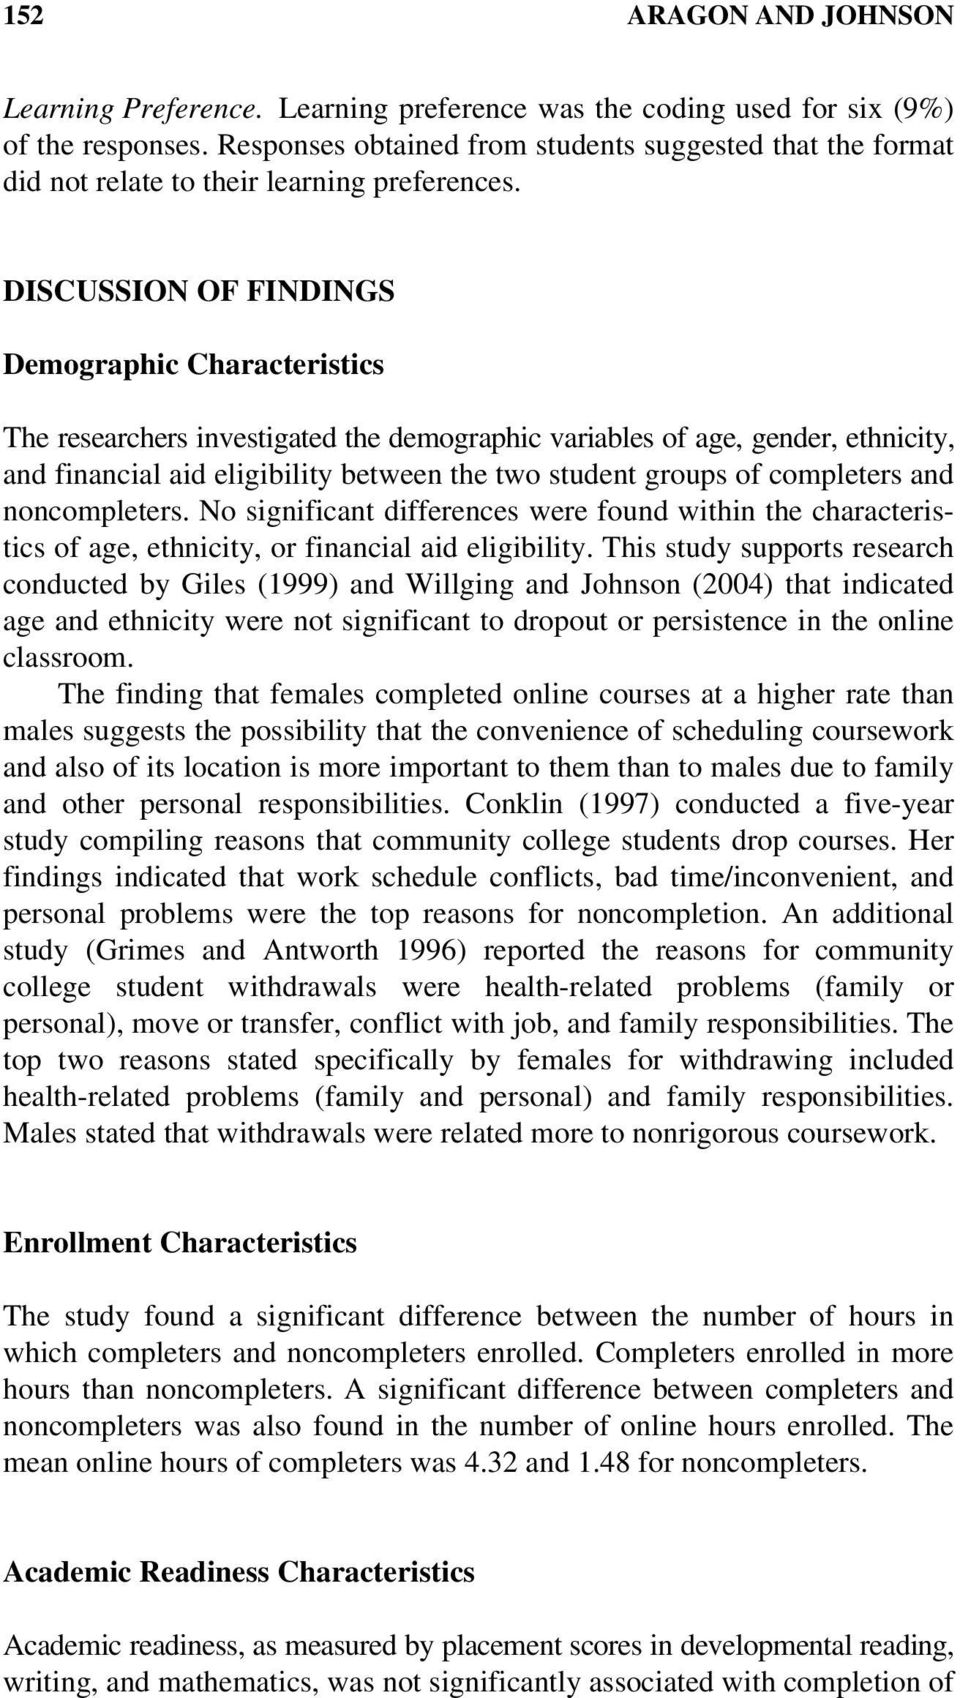 DISCUSSION OF FINDINGS Demographic Characteristics The researchers investigated the demographic variables of age, gender, ethnicity, and financial aid eligibility between the two student groups of